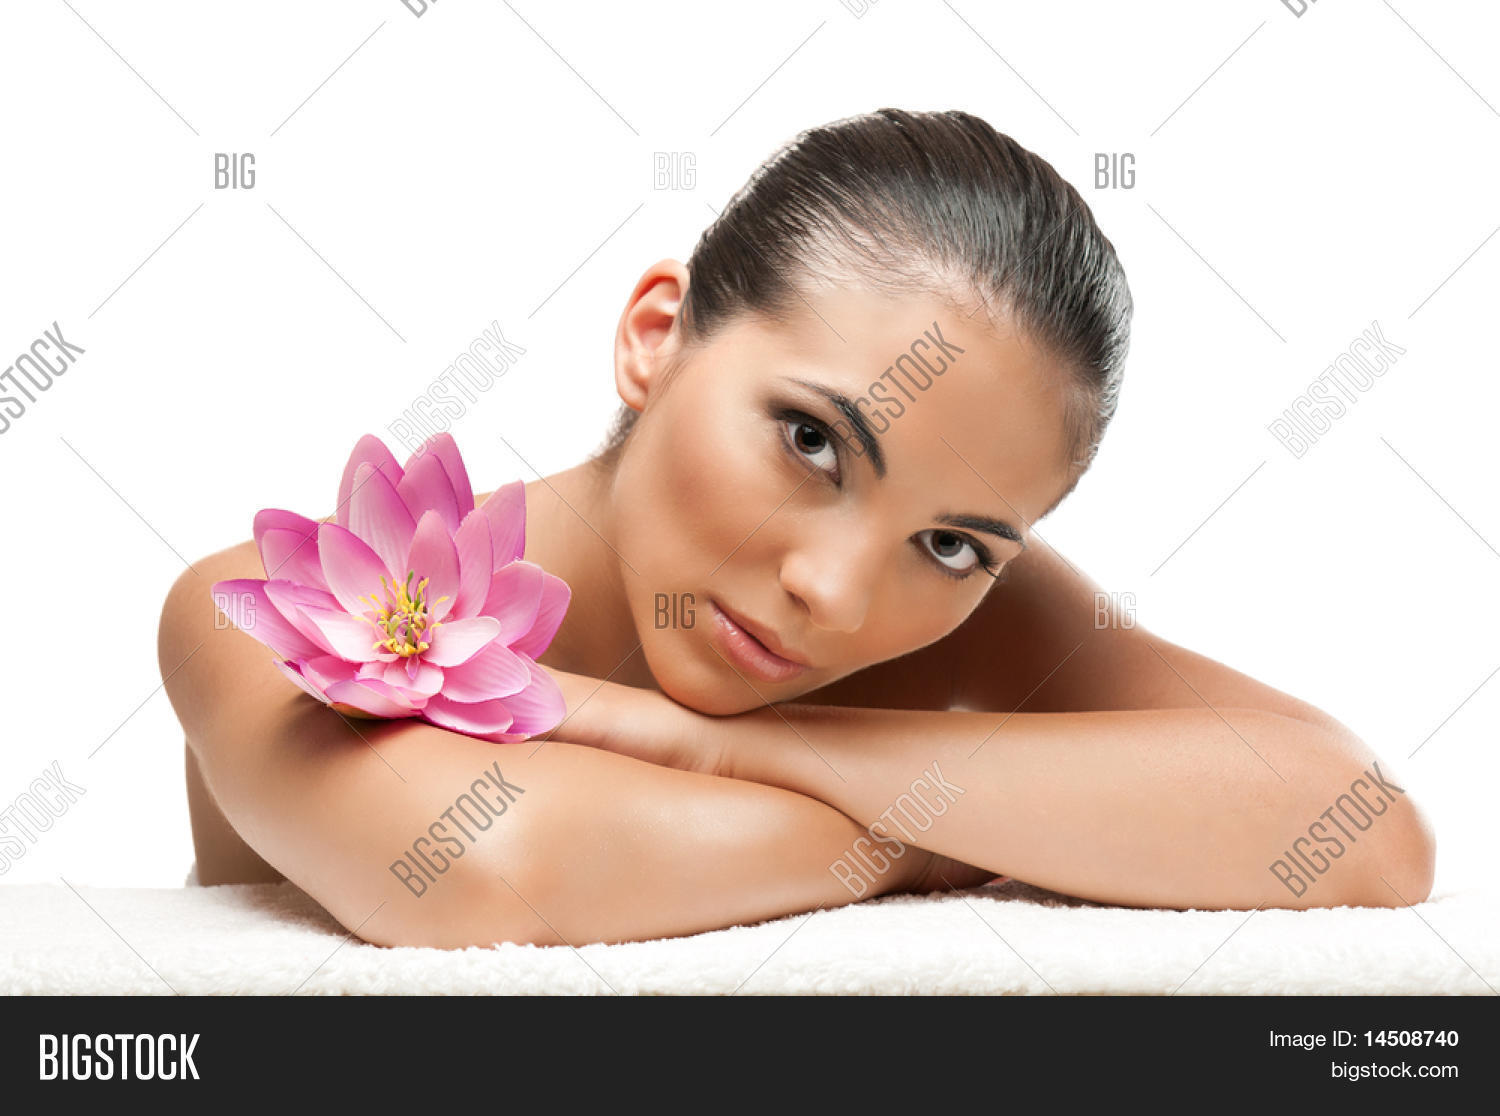 Young beautiful woman relaxing image photo bigstock young beautiful woman relaxing with lotus flower at spa isolated on white background professional beauty izmirmasajfo